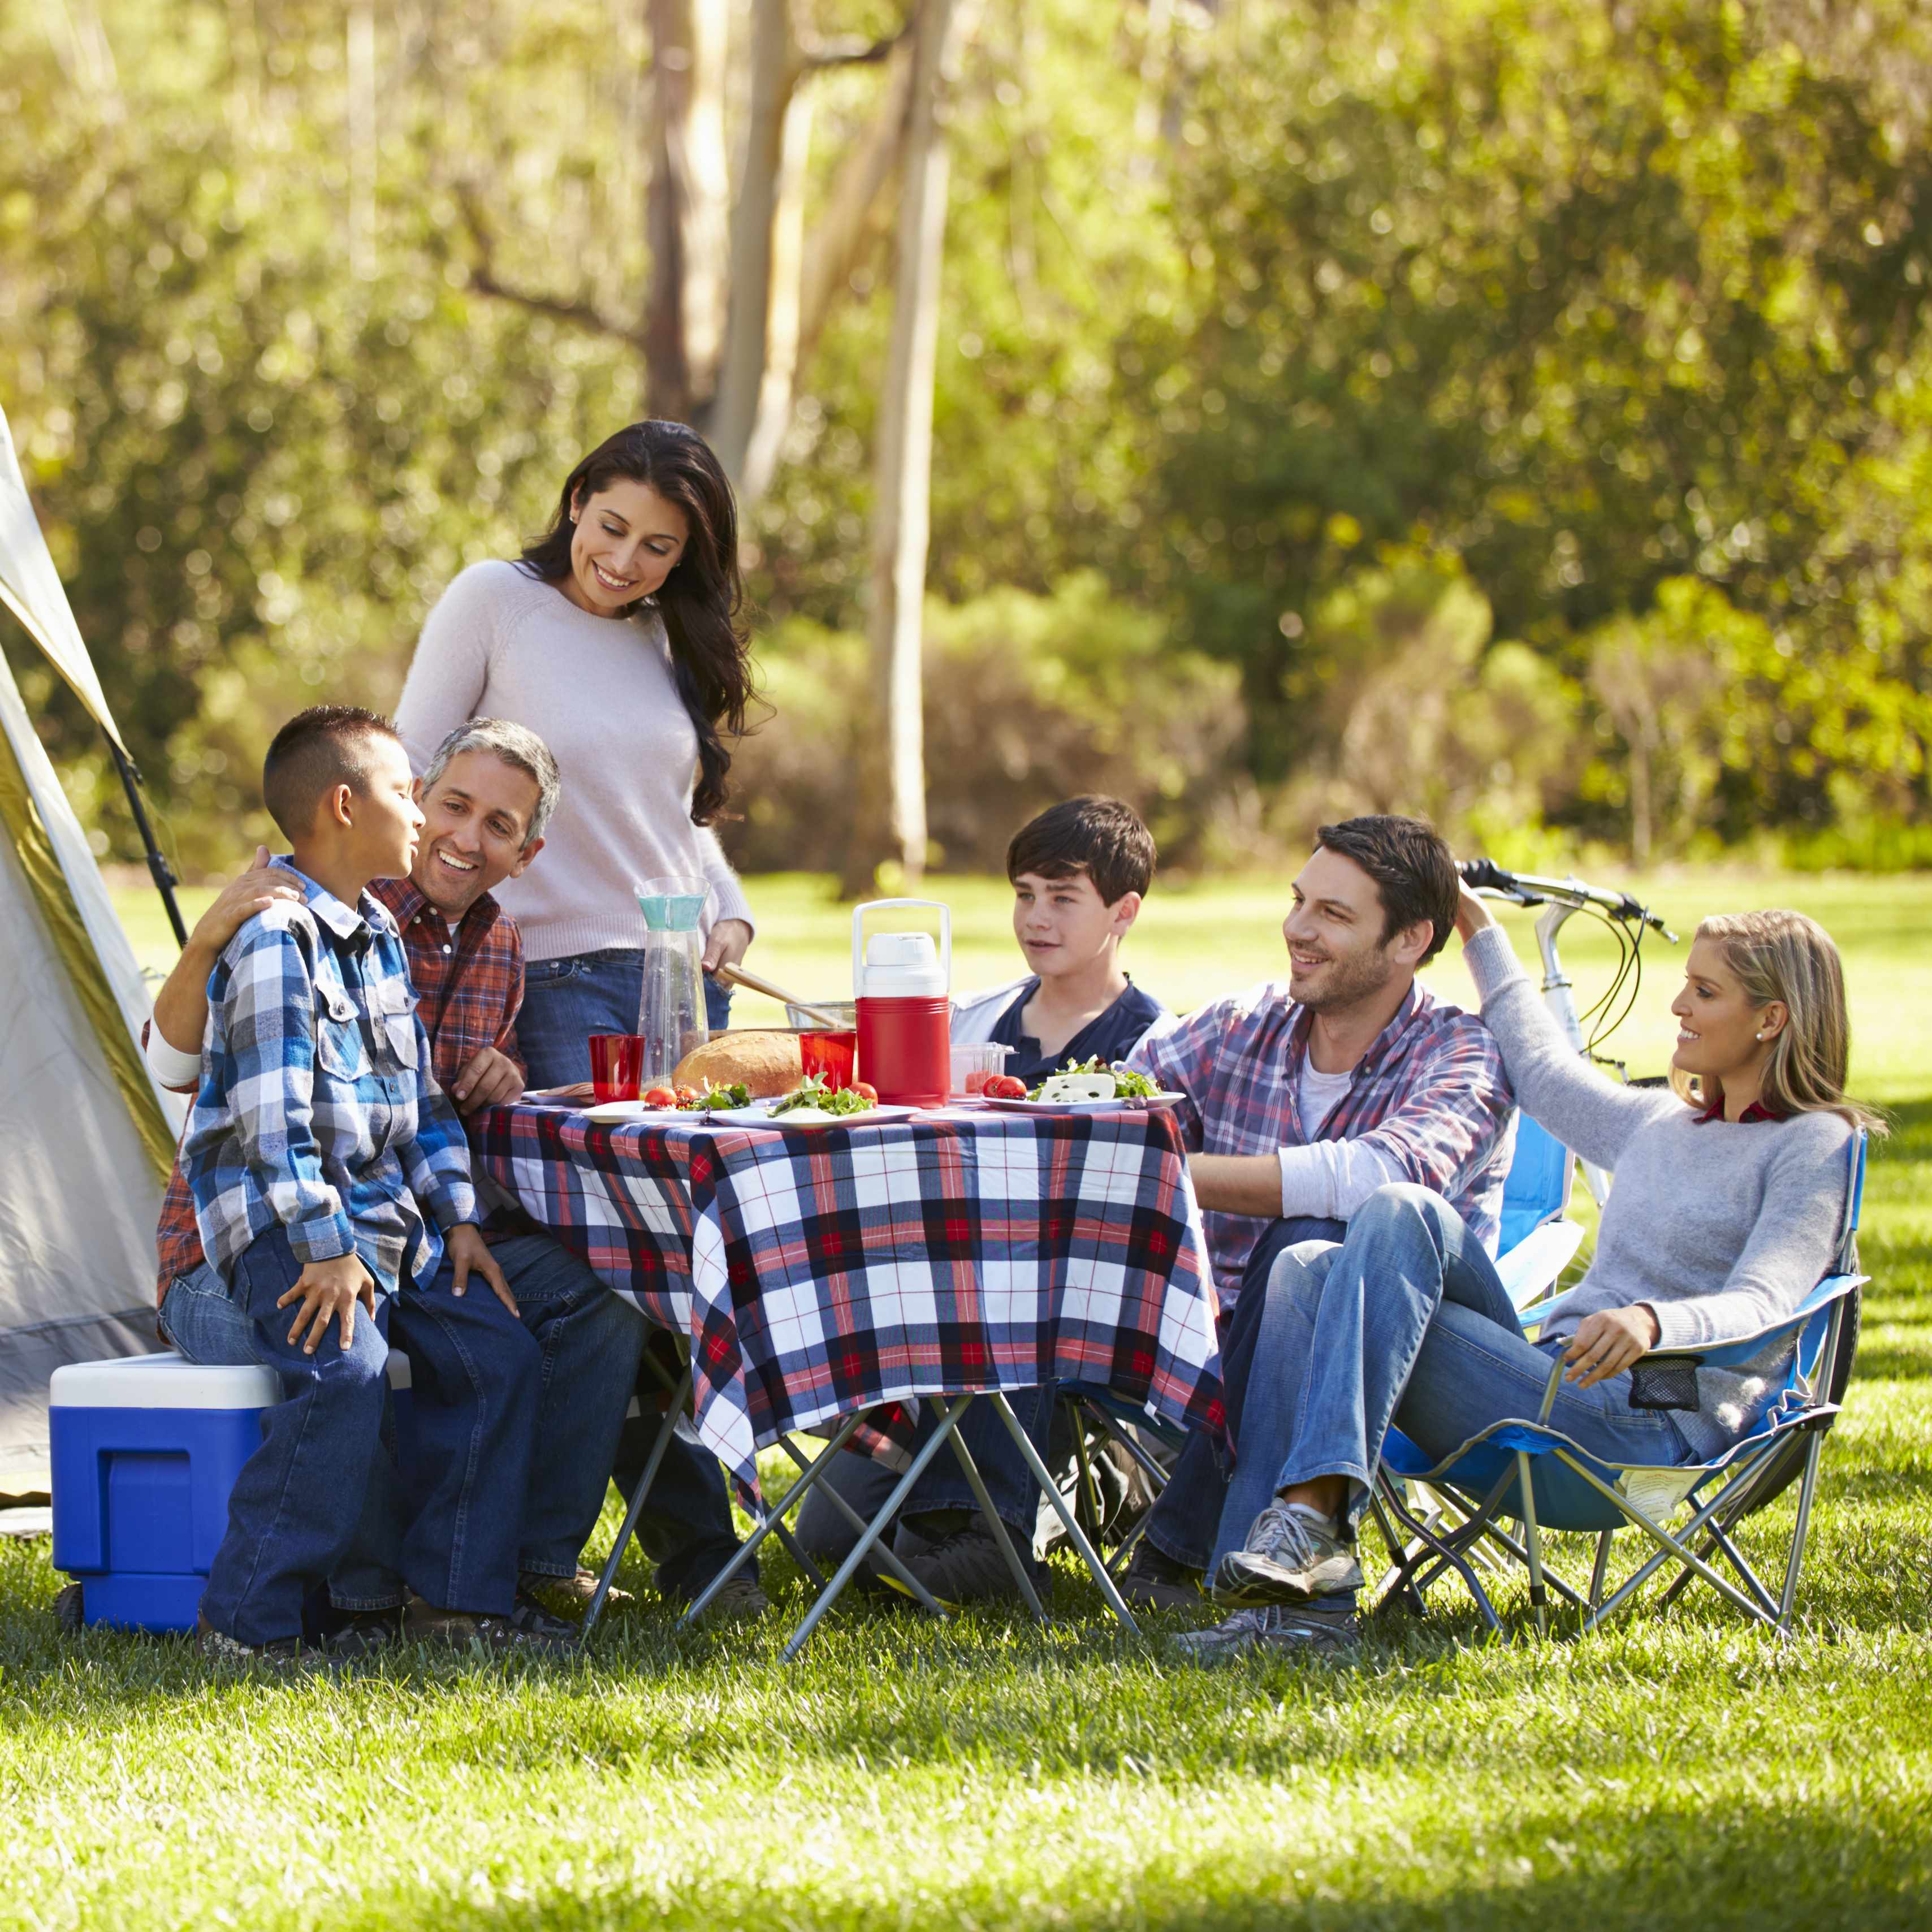 a family with friends outside camping and having an outdoor picnic